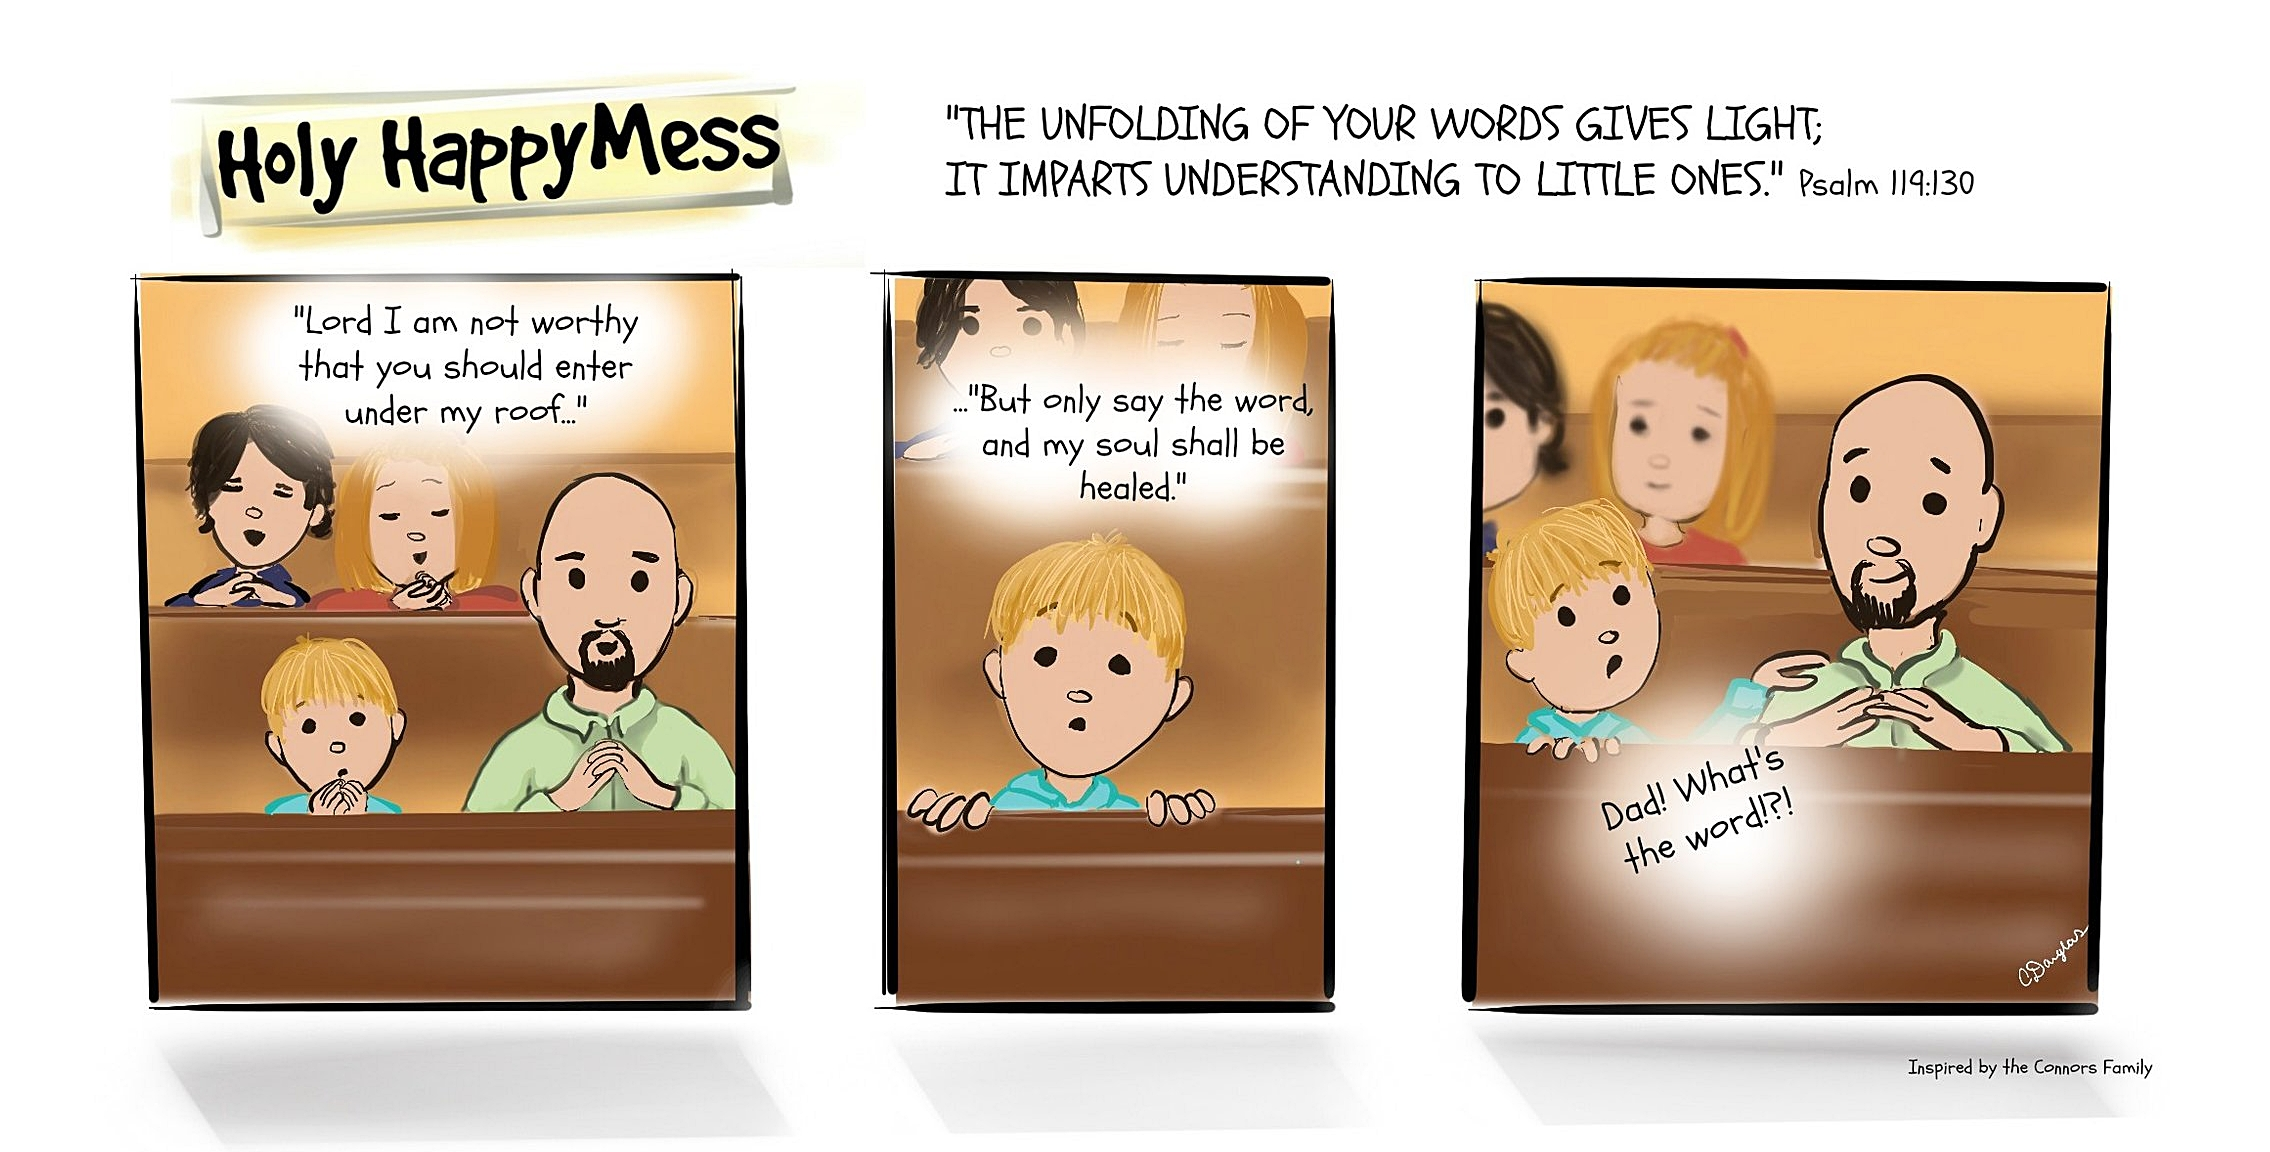 This comic was inspired by family friends. Let us know if you'd like to share your family moments with us too!